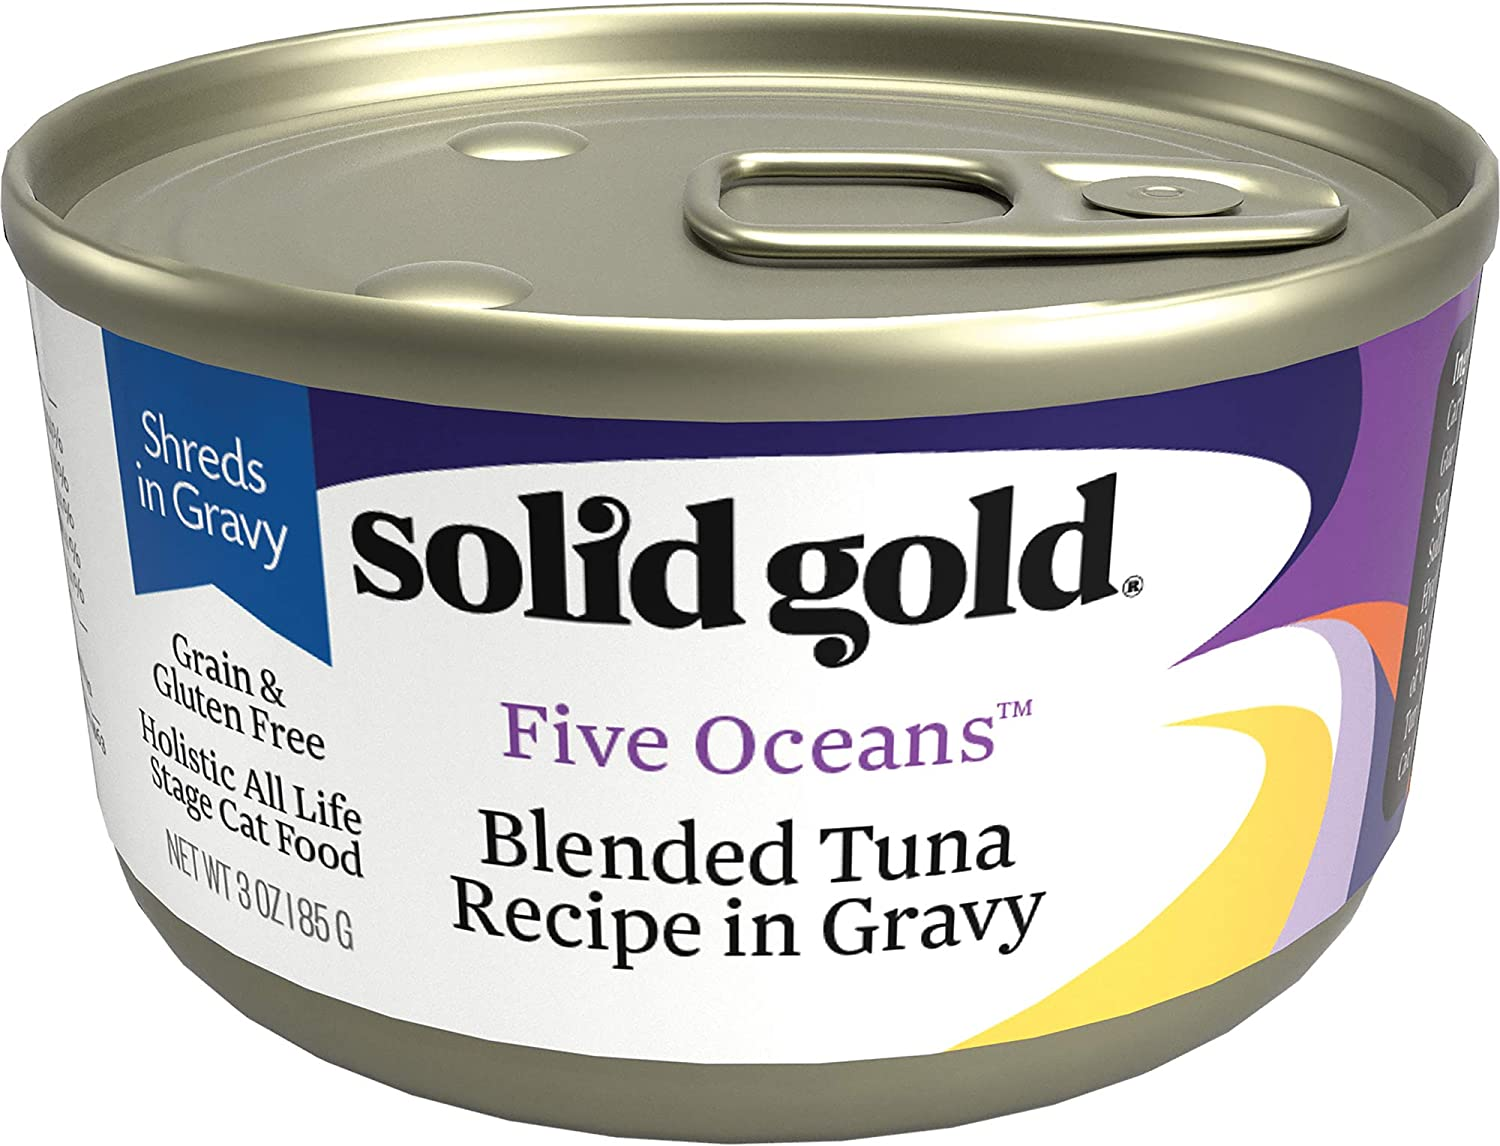 5. Solid Gold Five Oceans Canned Cat Food with Real Tuna in Gravy